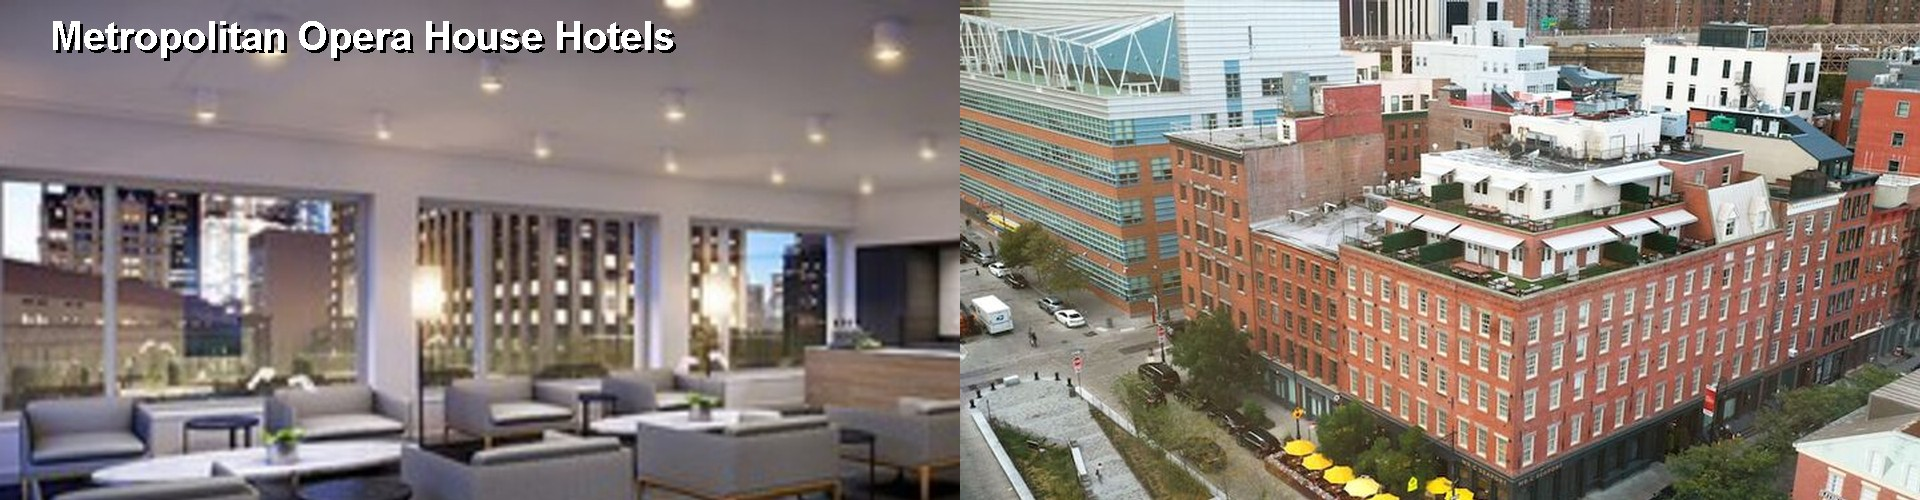 5 Best Hotels near Metropolitan Opera House